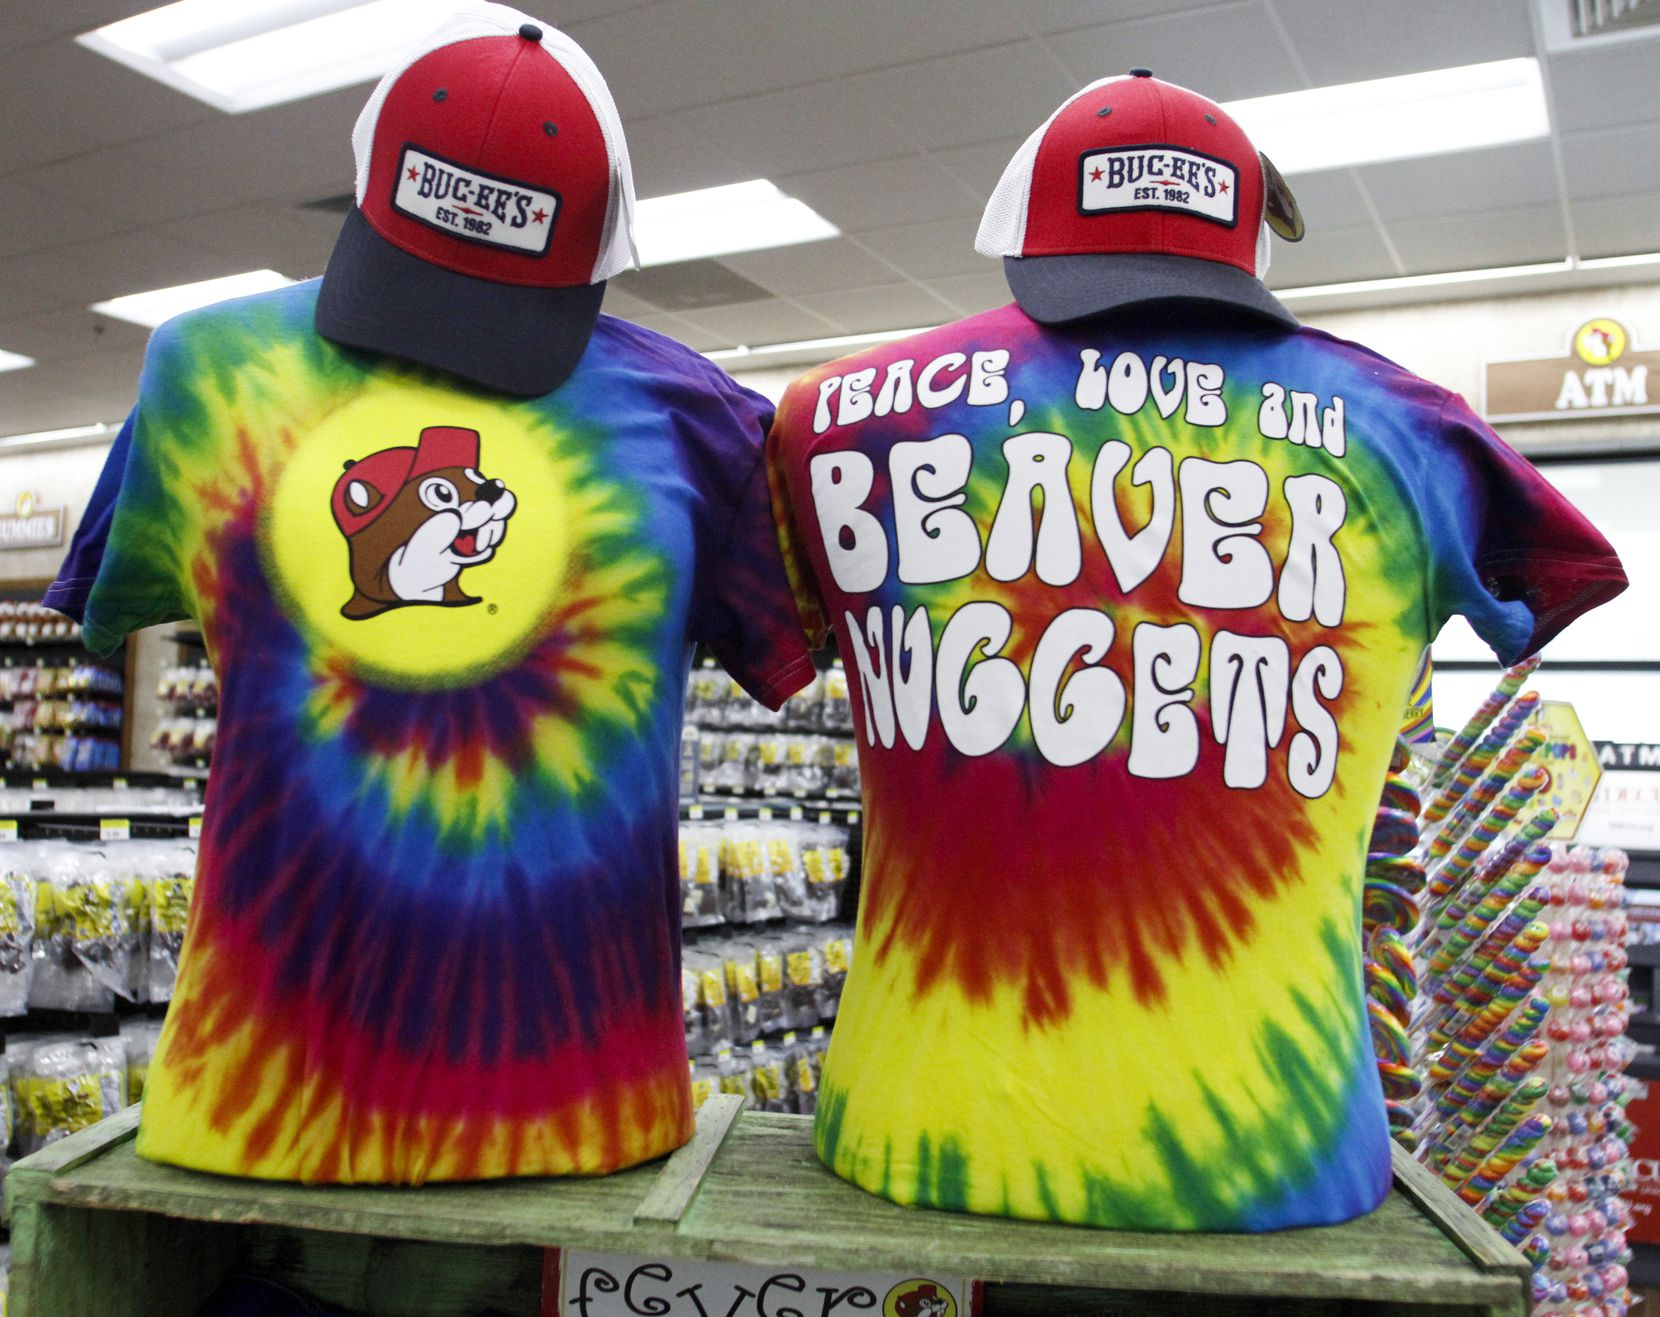 One of the many t-shirts you can buy at Buc-ee's in Terrell